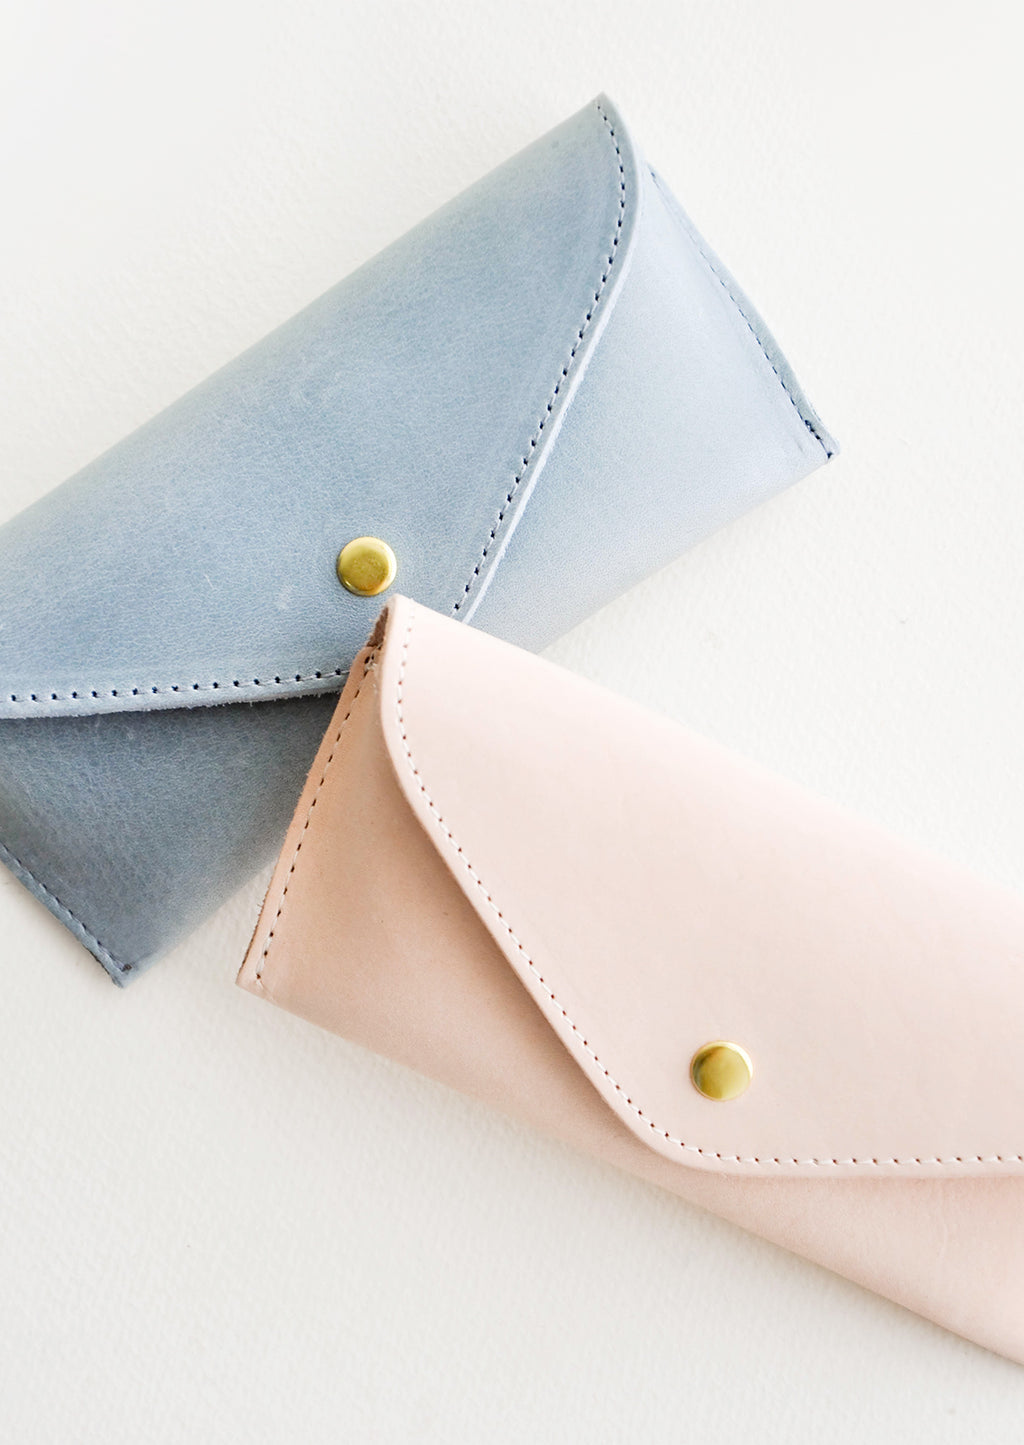 1: Two leather cases for sunglasses that fold close with a snap, one blue and one pink.